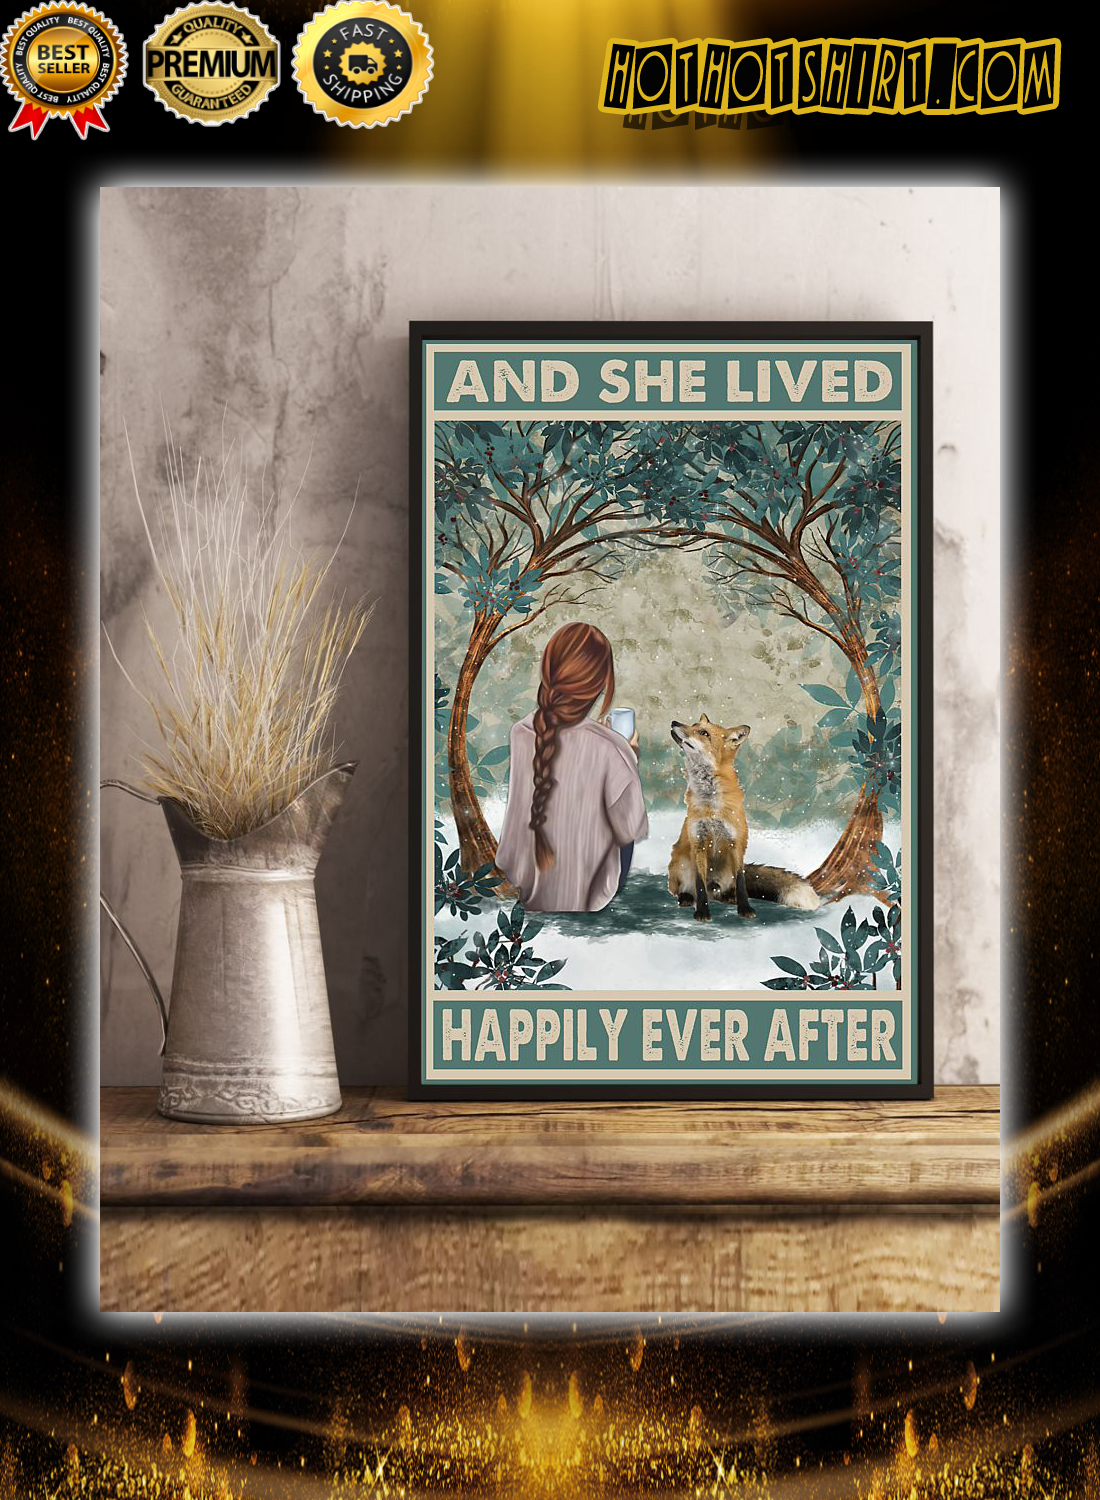 Girl and fox and she lived happily ever after poster 3